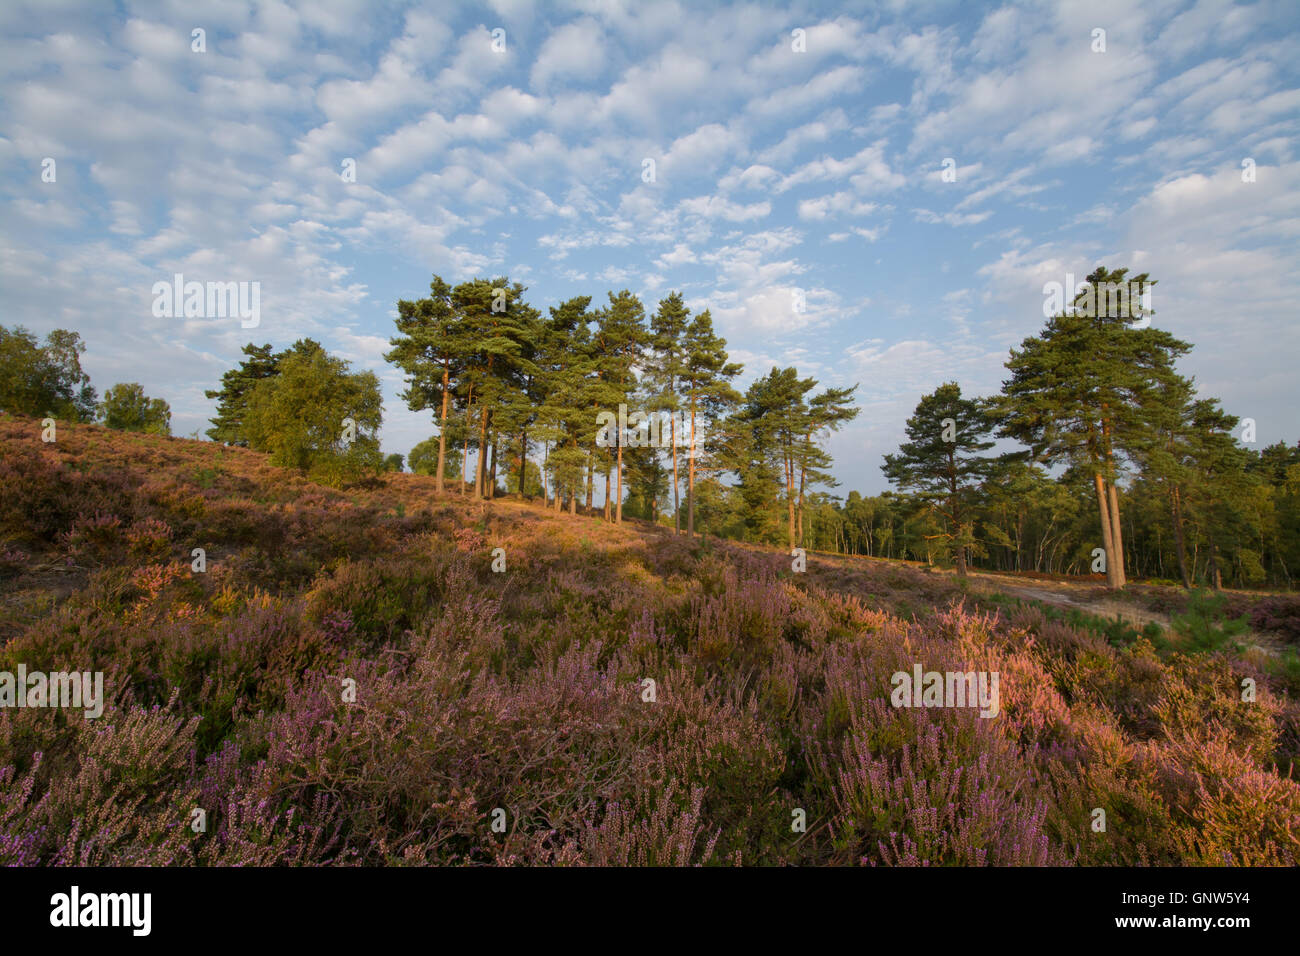 View over Witley Common, Surrey, England, in summer with heather in flower. Surrey Hills Area of Outstanding Natural - Stock Image